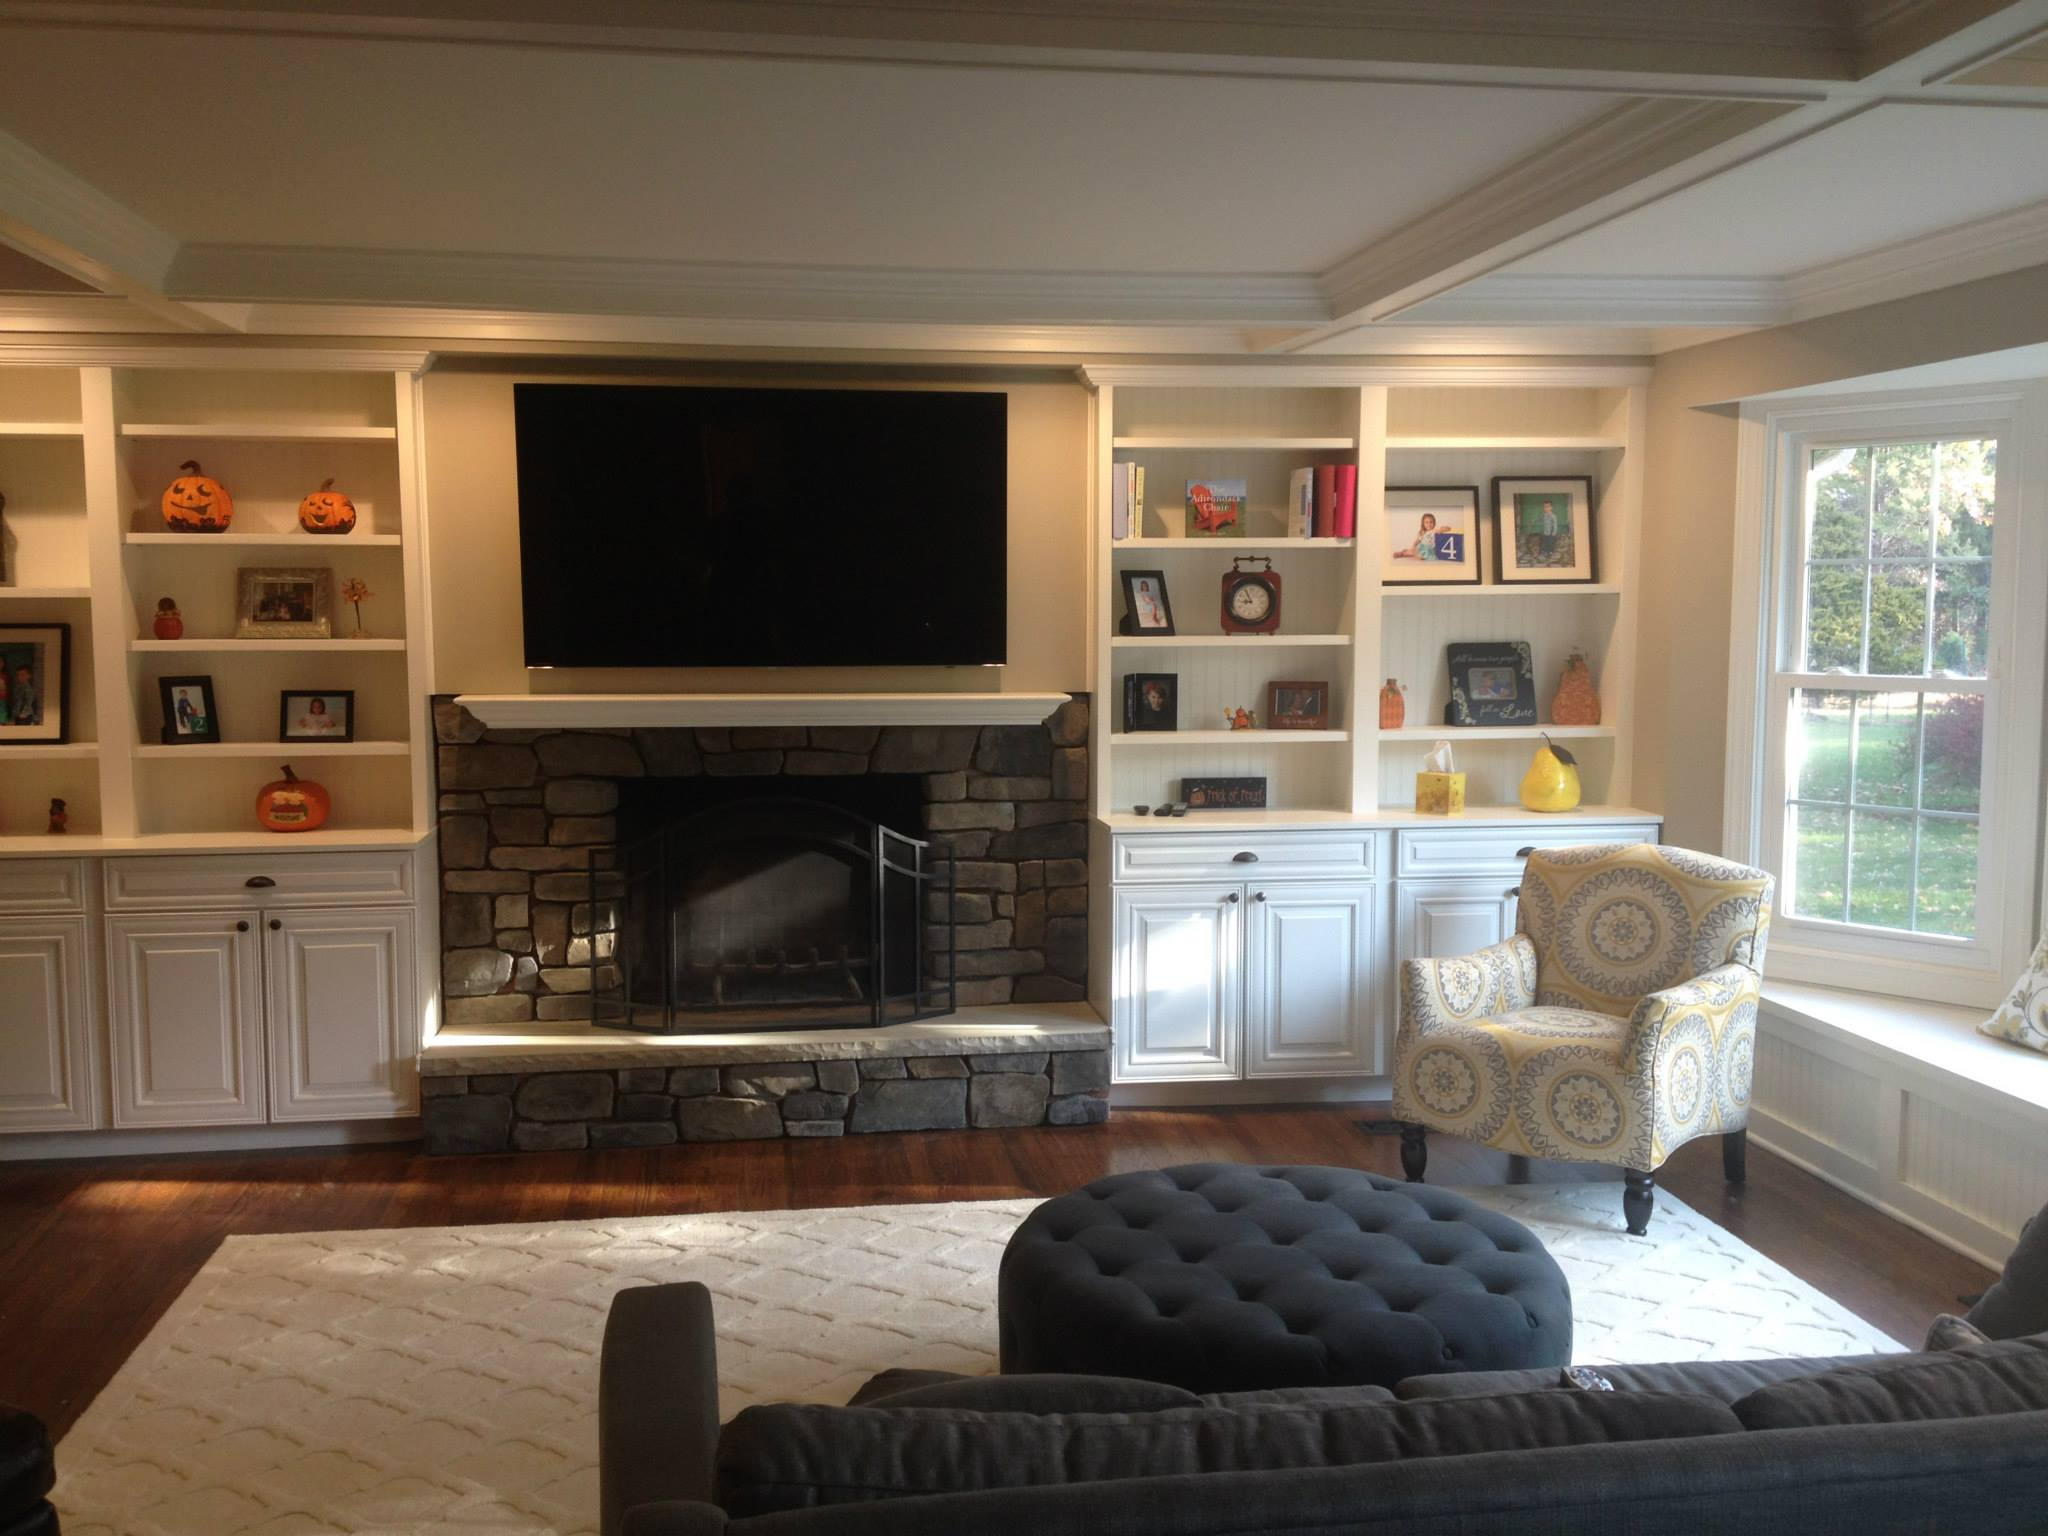 How To Build In A Gas Fireplace Bridgewater Nj Built In Cabinetry Around Fireplace